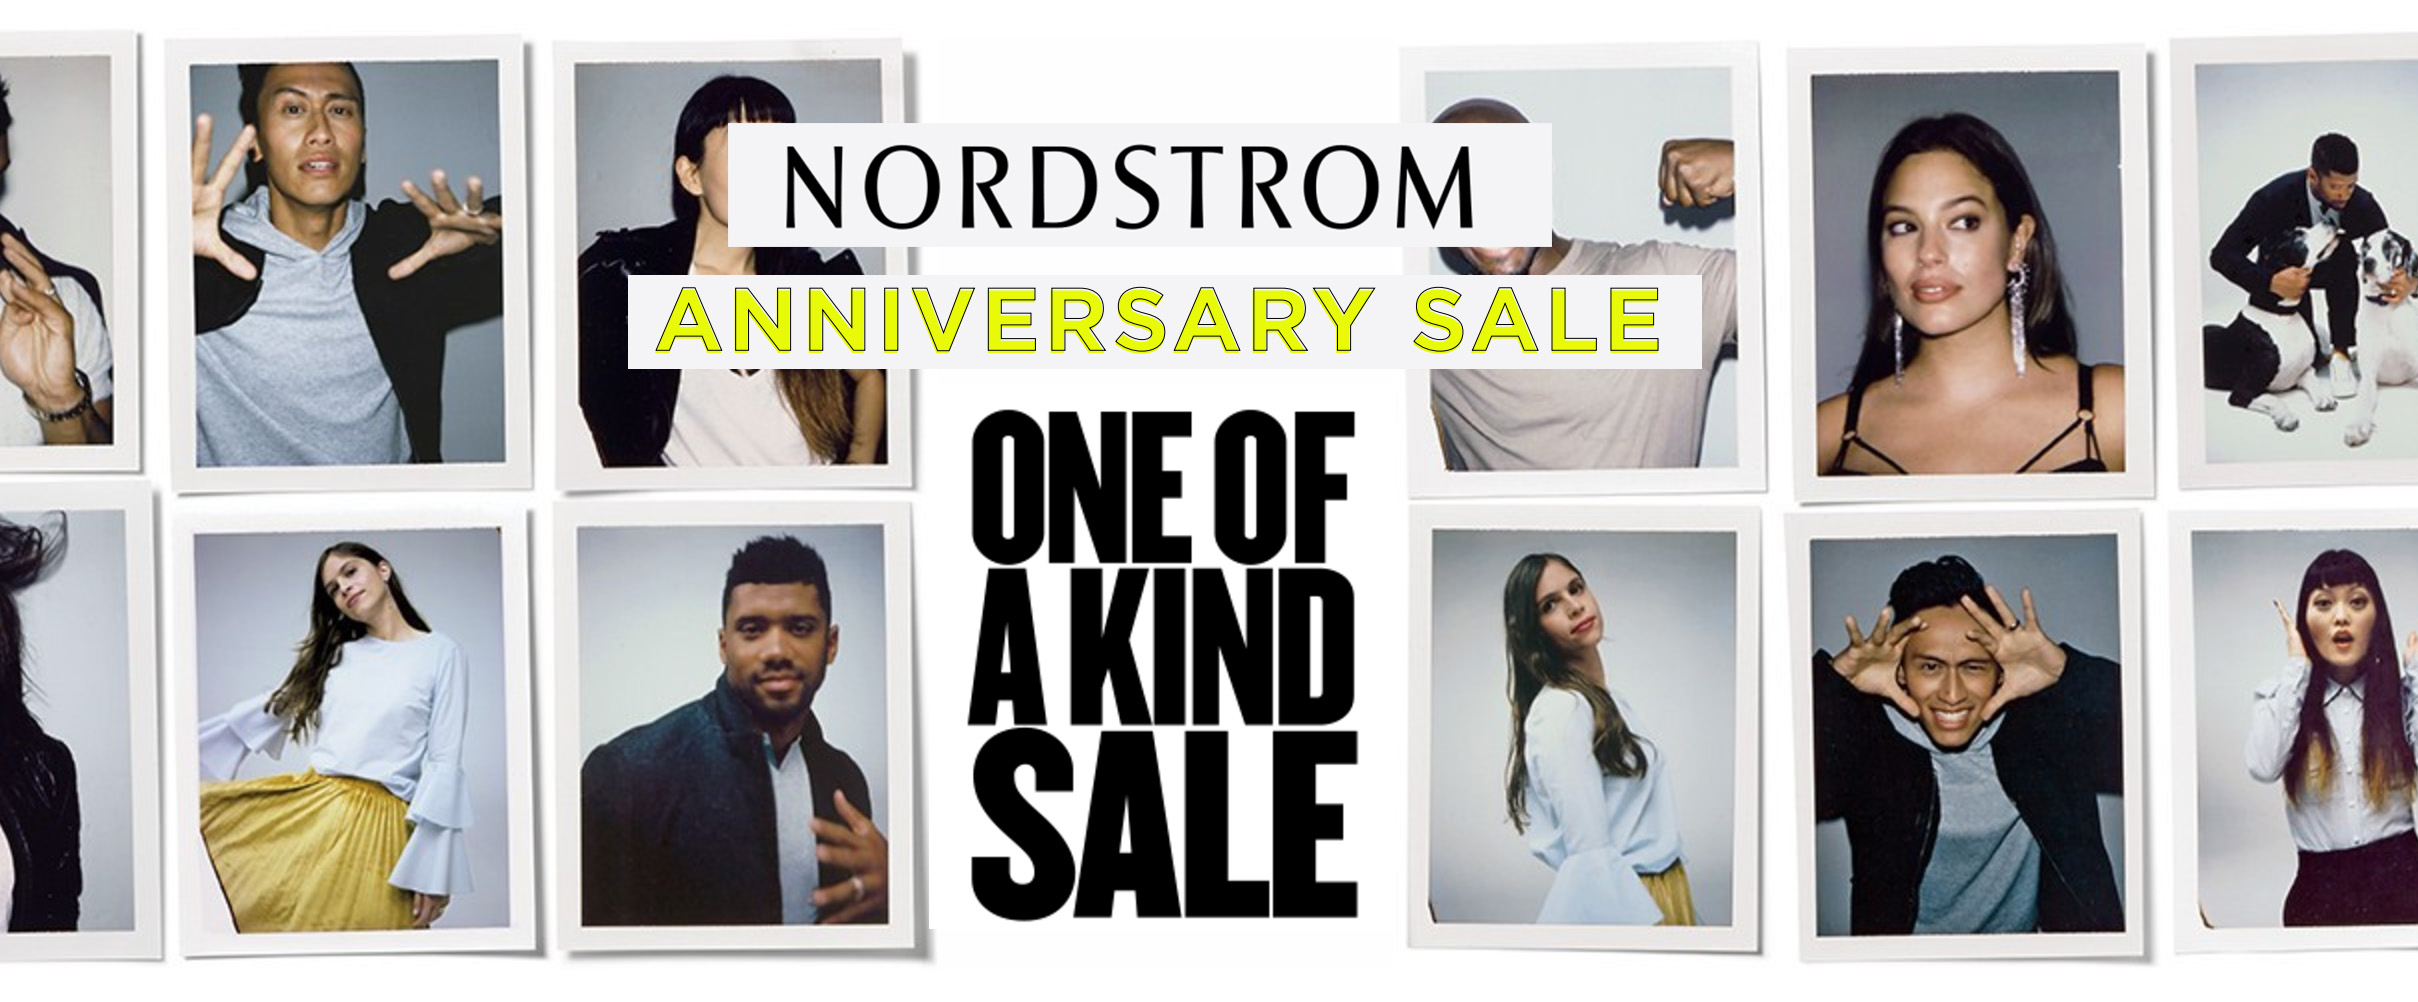 f6ede455eee5b Nordstrom Anniversary Sale  The Tips + Tricks You Need to Know ...